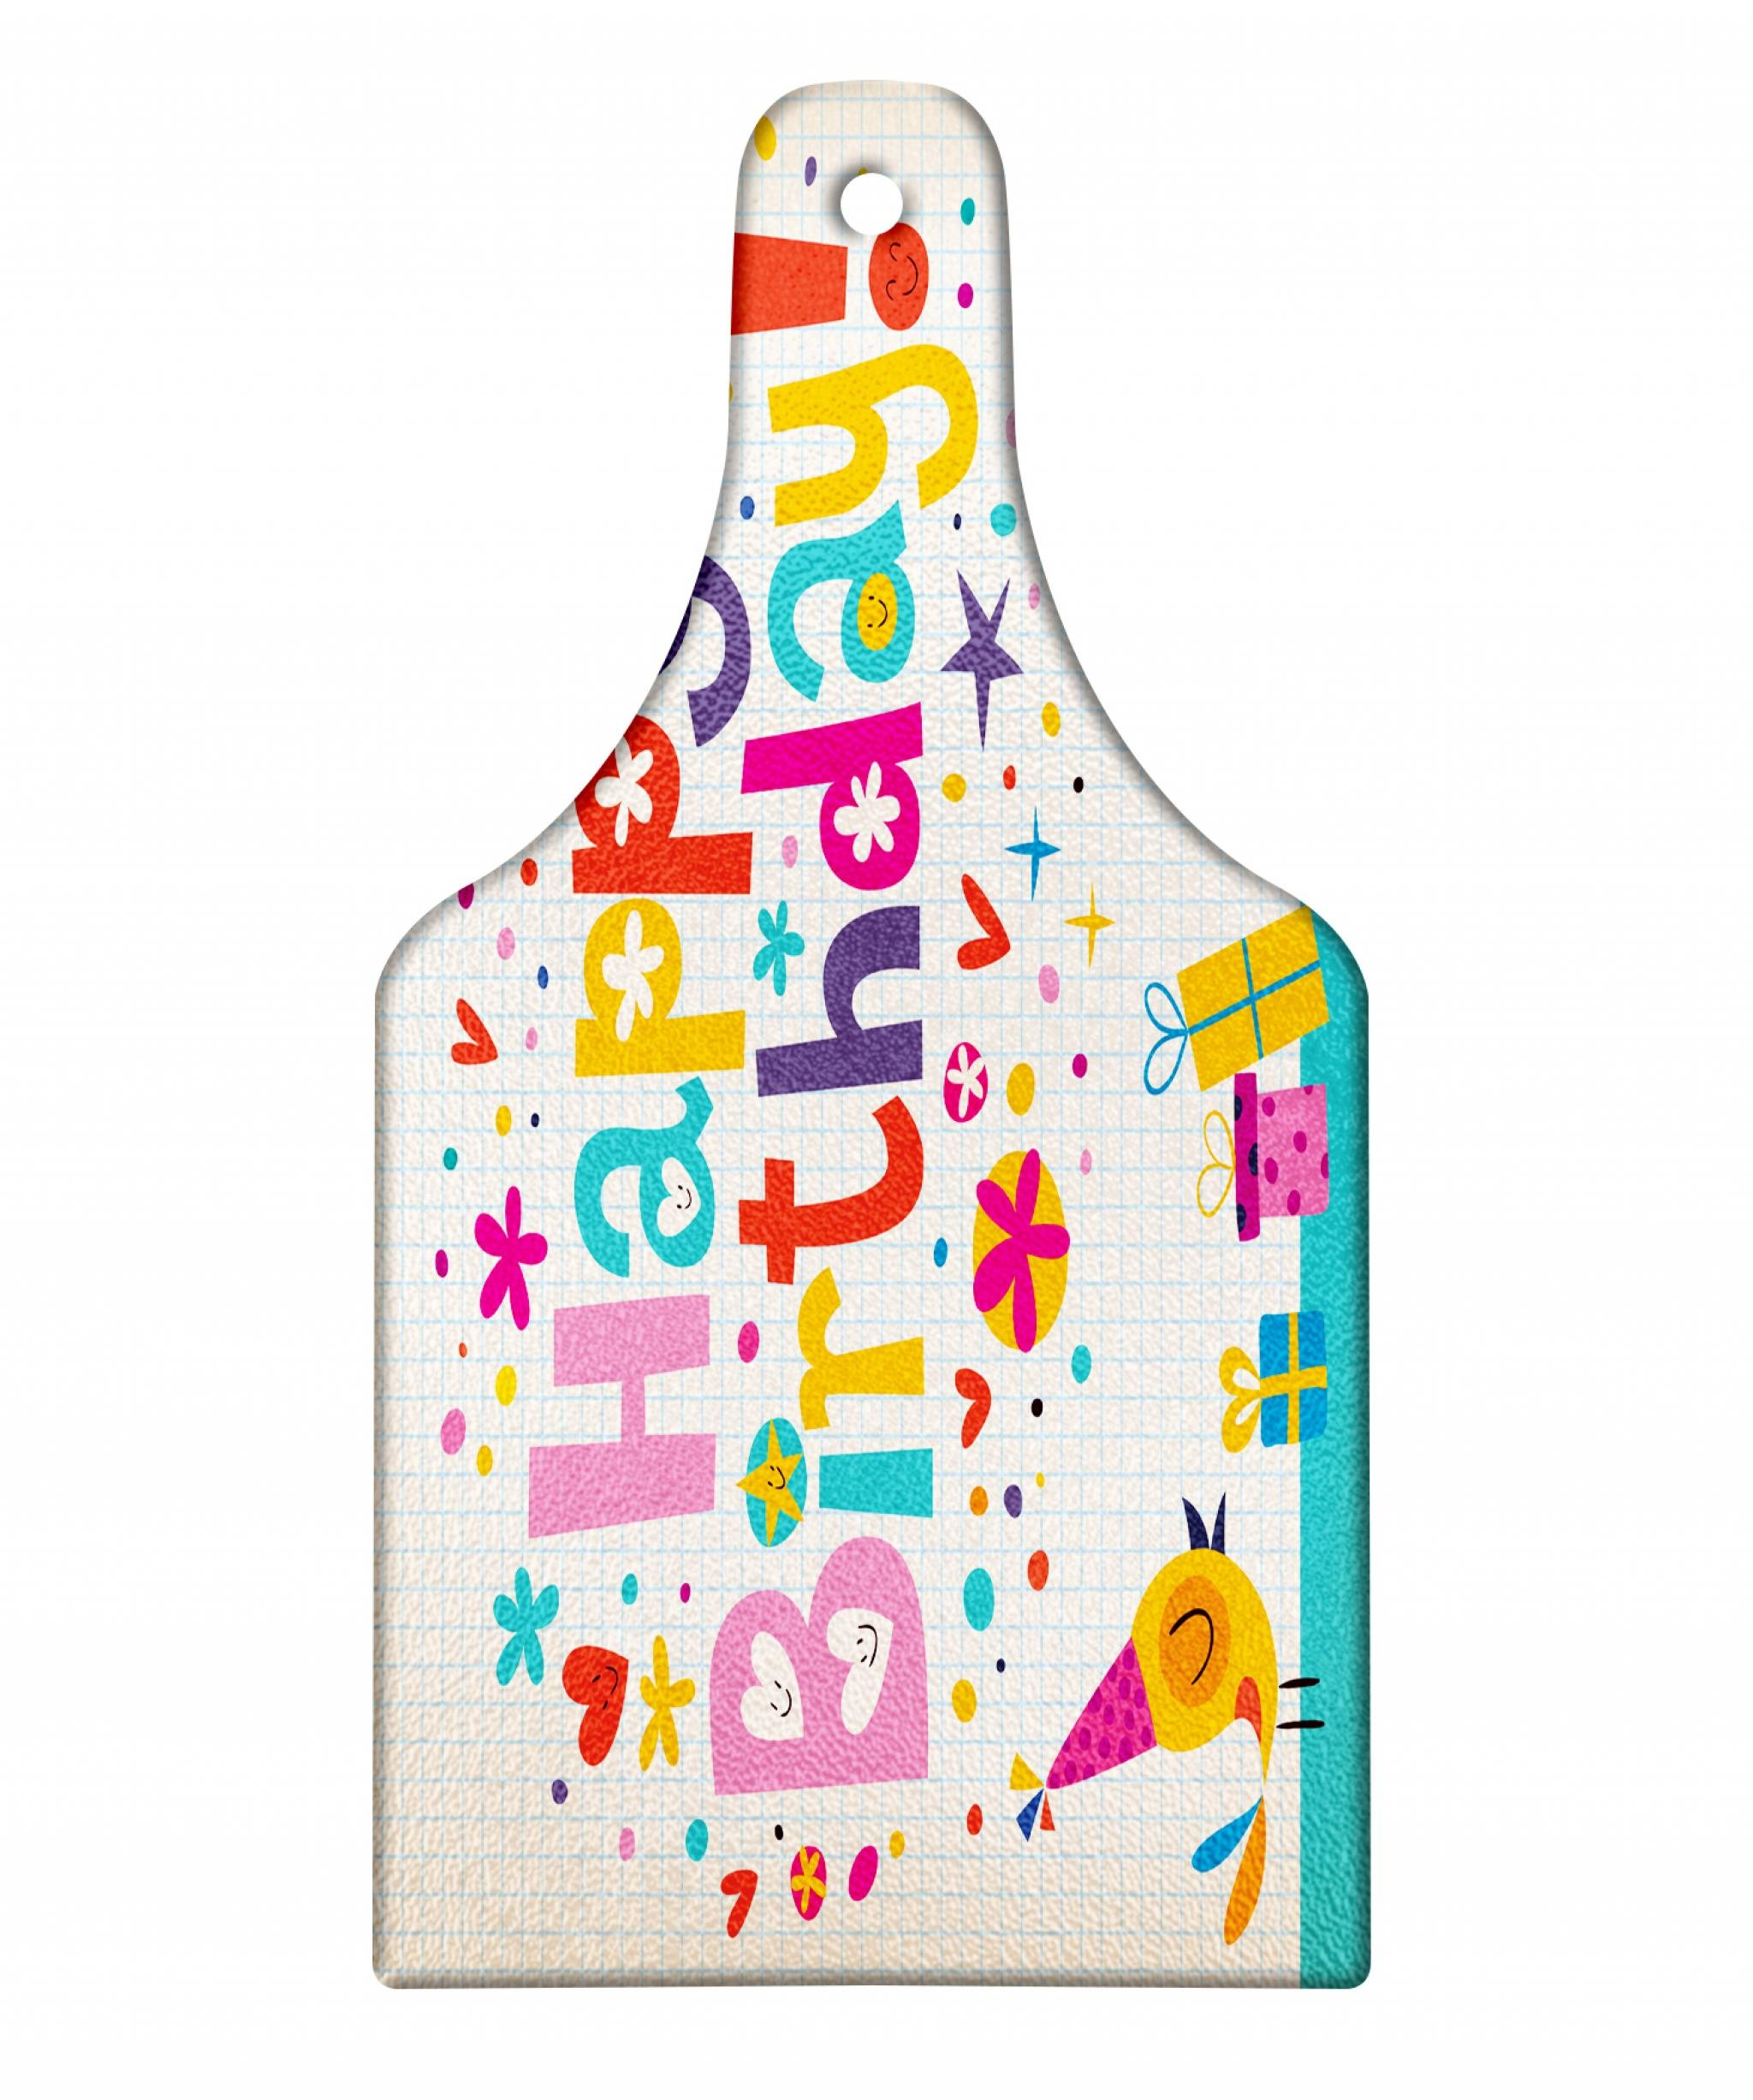 Ambesonne Kids Birthday Cutting Board, School Theme Math Student Note Pad Floral Rainbow Colored Party Quote Print, Decorative Tempered Glass Cutting and Serving Board, Wine Bottle Shape, Multicolor